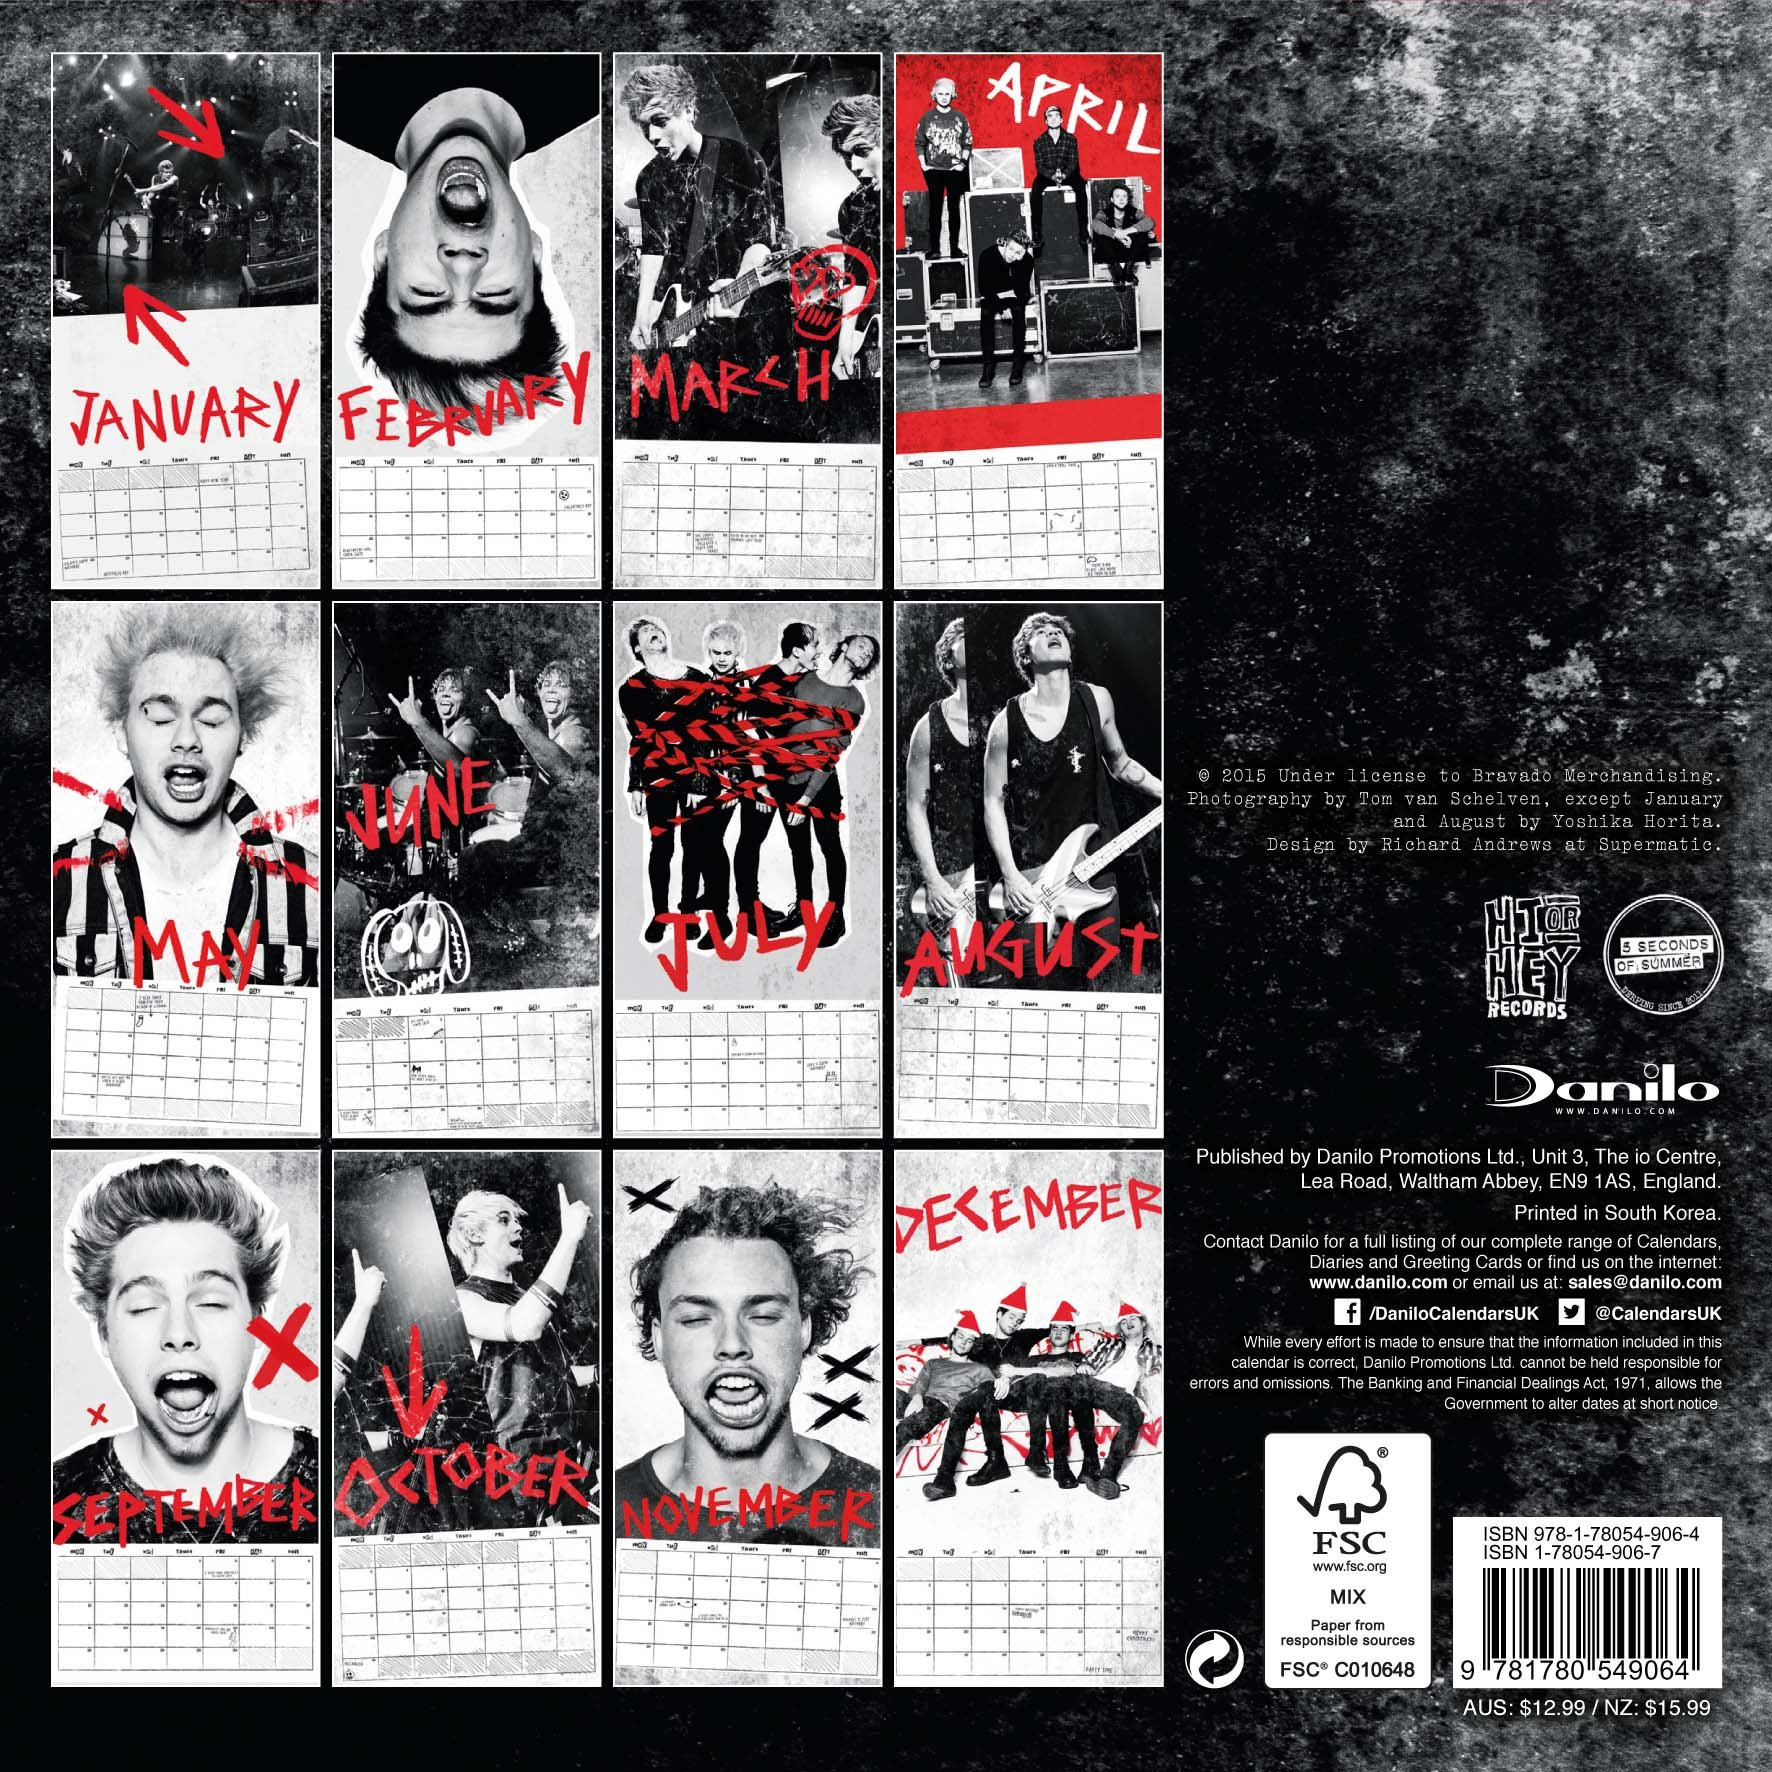 The Official 5 Seconds Of Summer 2016 Mini Calendar 9781780549064